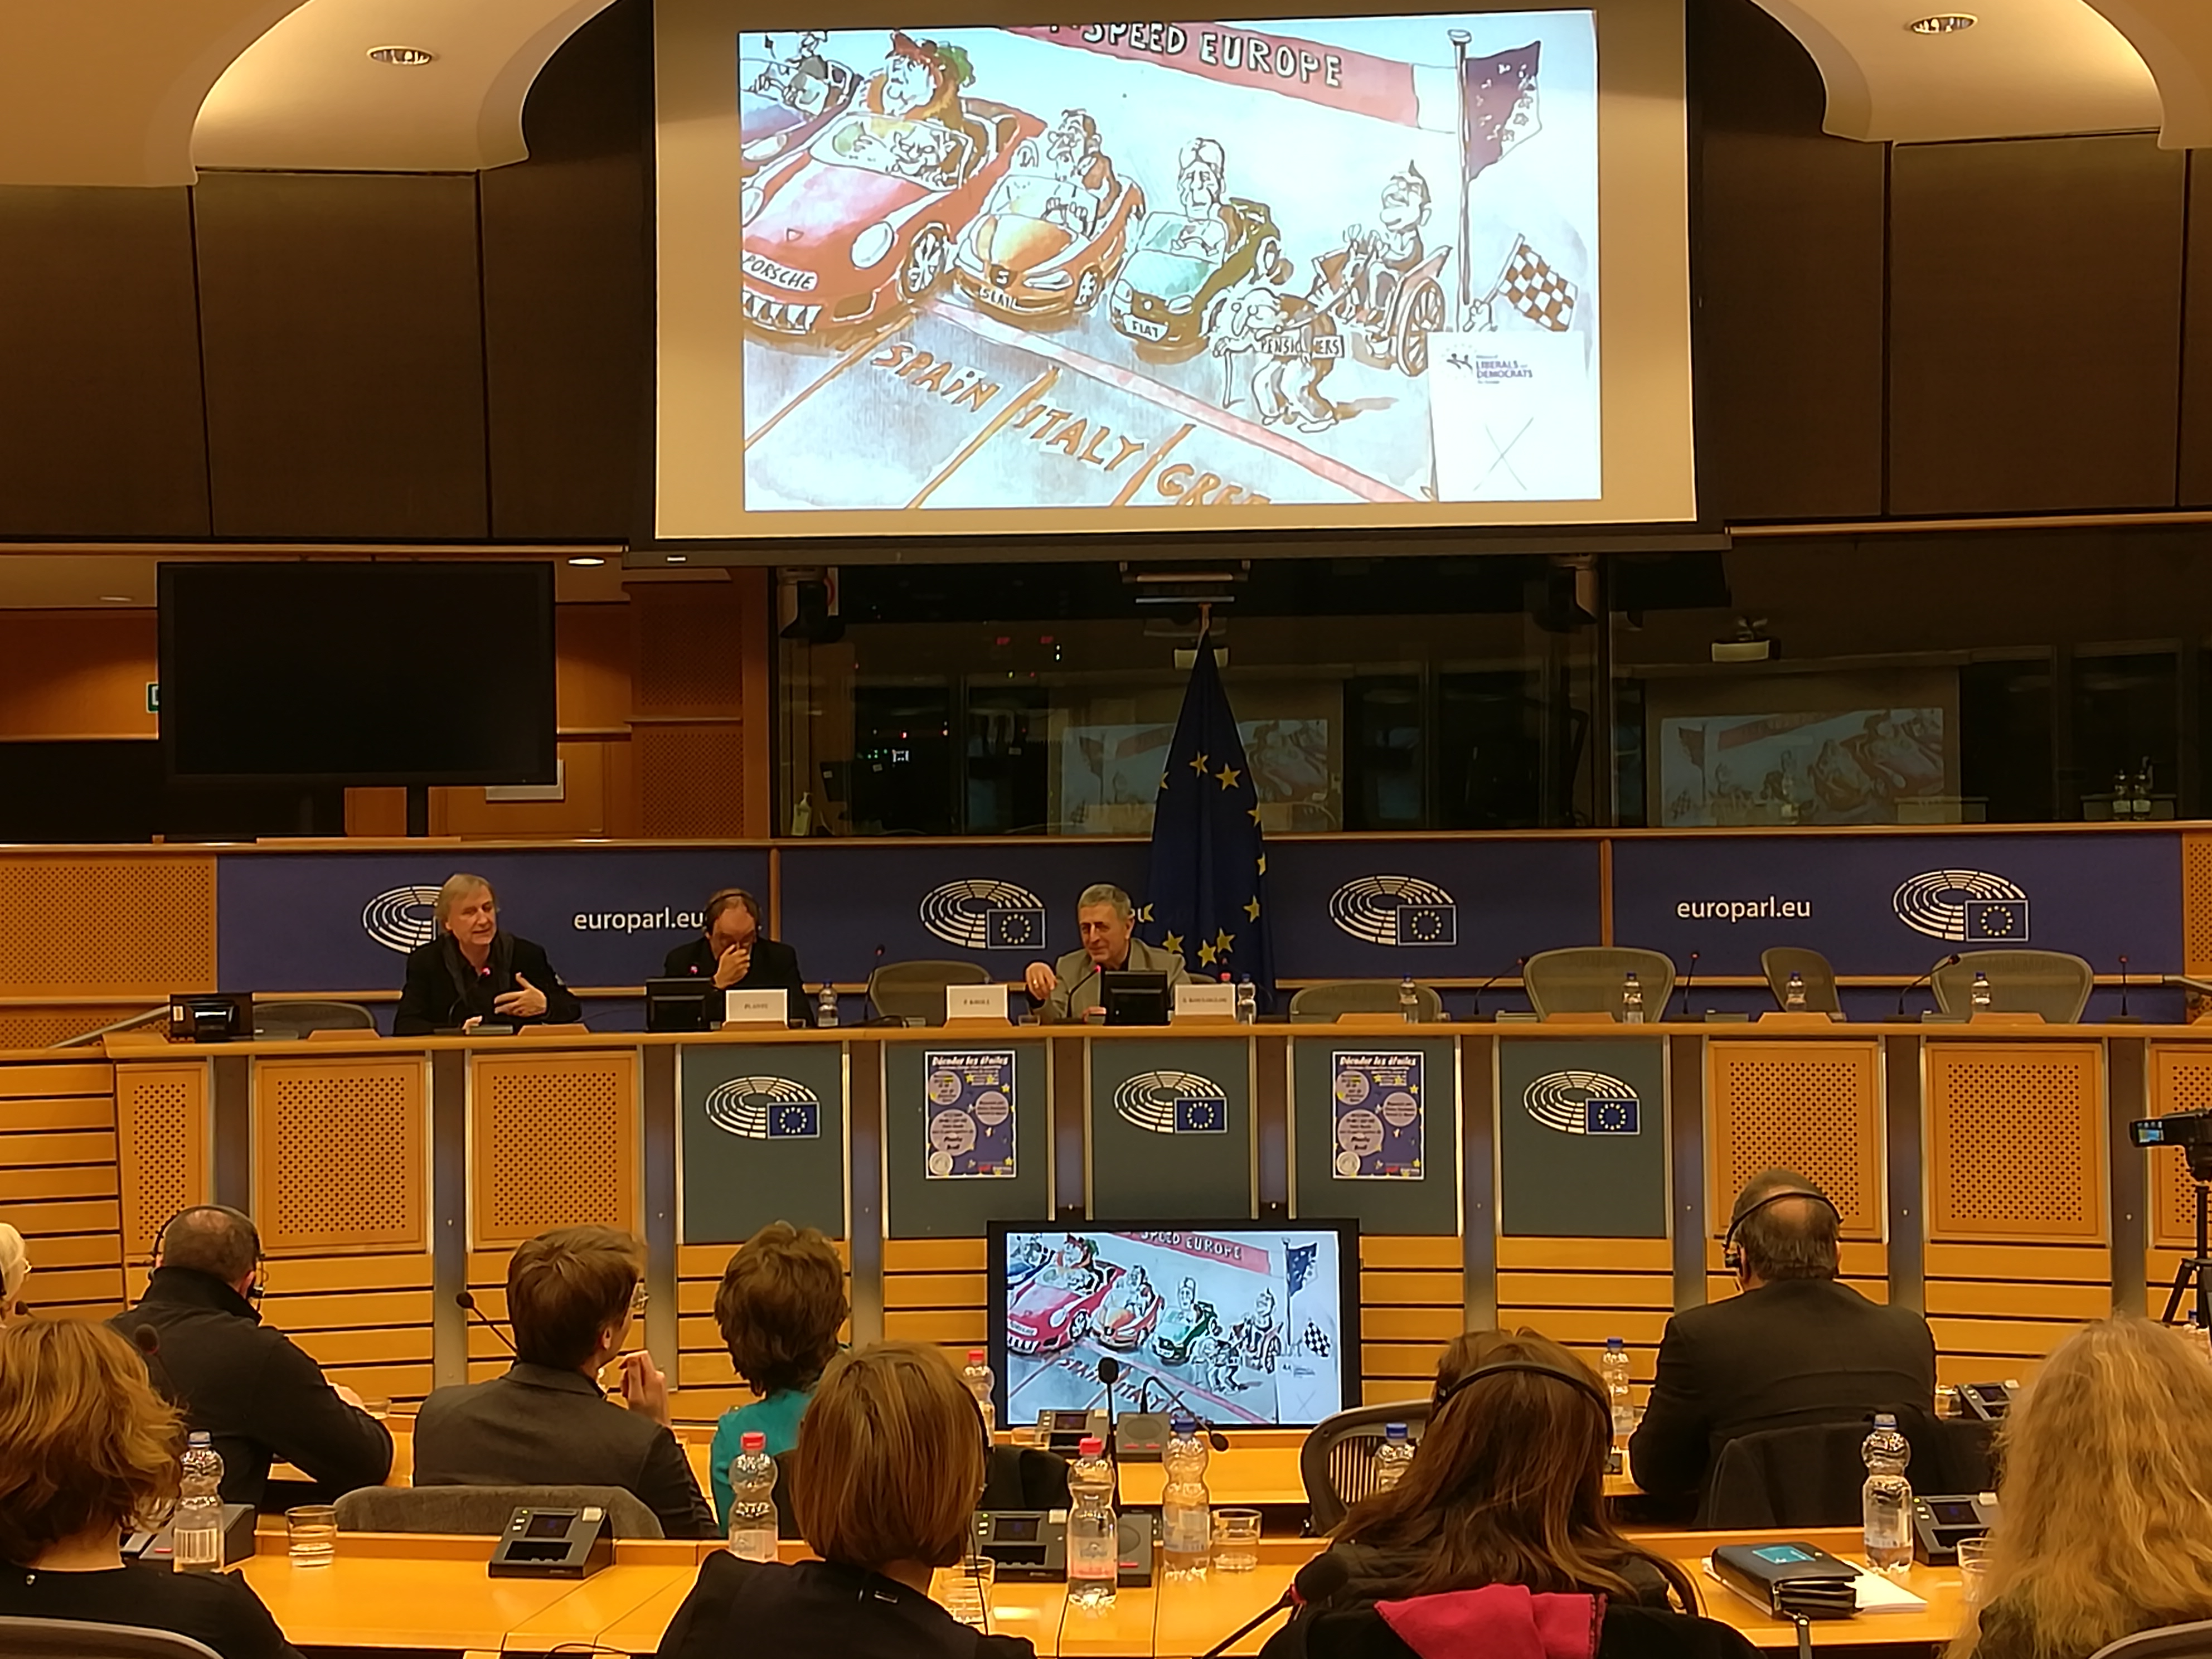 Panel discussion «Europe in crisis, seen by Plantu and Pierre Kroll»